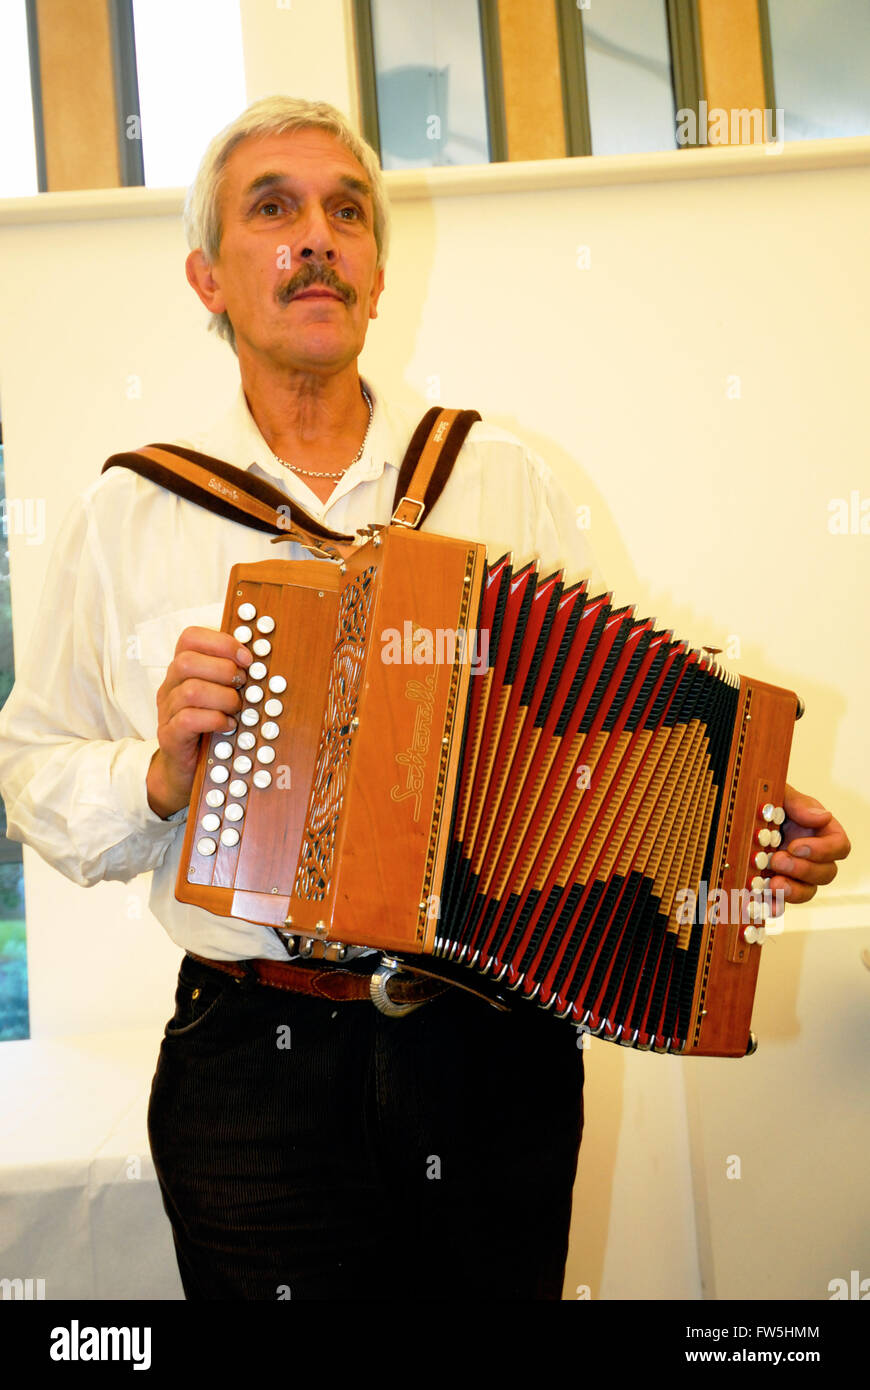 Alan Wheeler, of Cotillion folk group, West Sussex, playing the melodion (English folk concertina) 'in D and G', Stock Photo